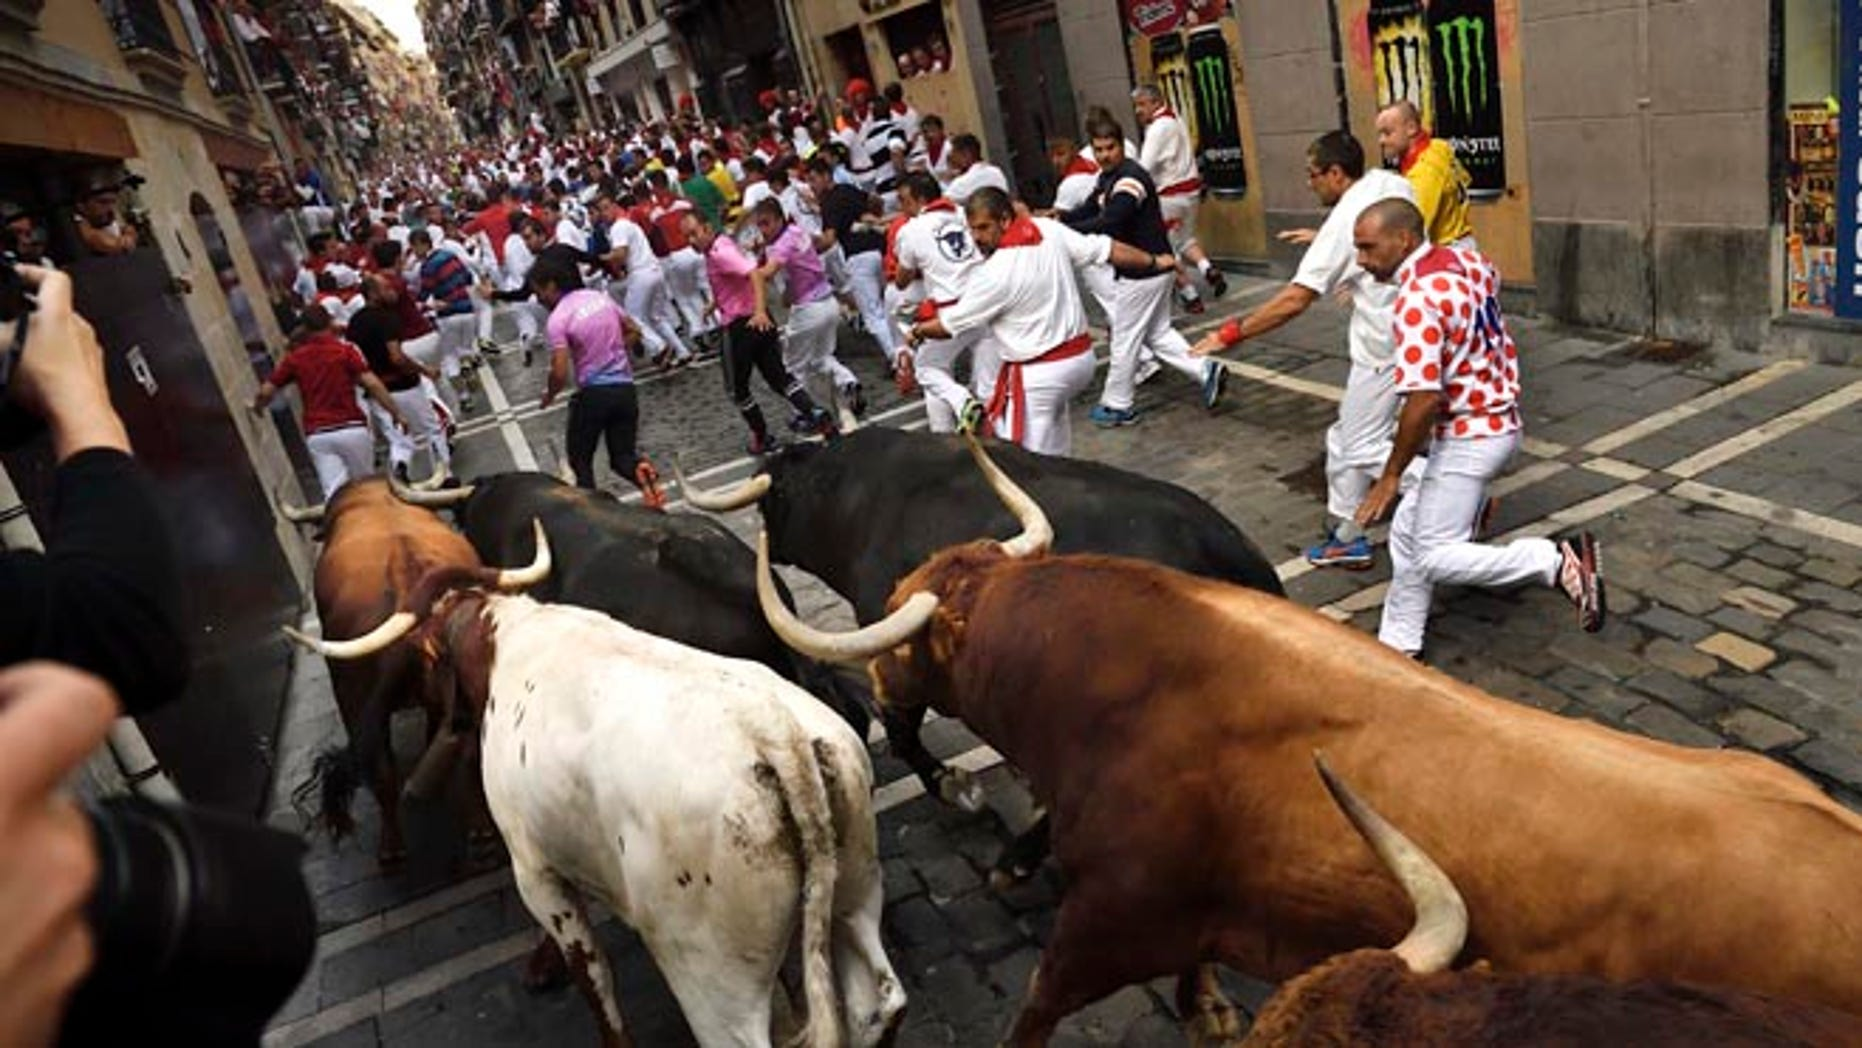 Revelers run in front of Jandilla's fighting bulls at the San Fermin Festival, in Pamplona, Monday, July 11, 2016.